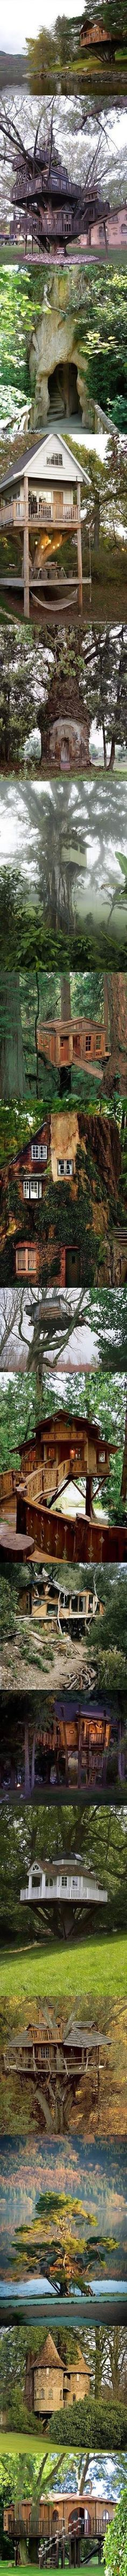 Really Awesome Treehouses | Boo Fckm HooBoo Fckm Hoo